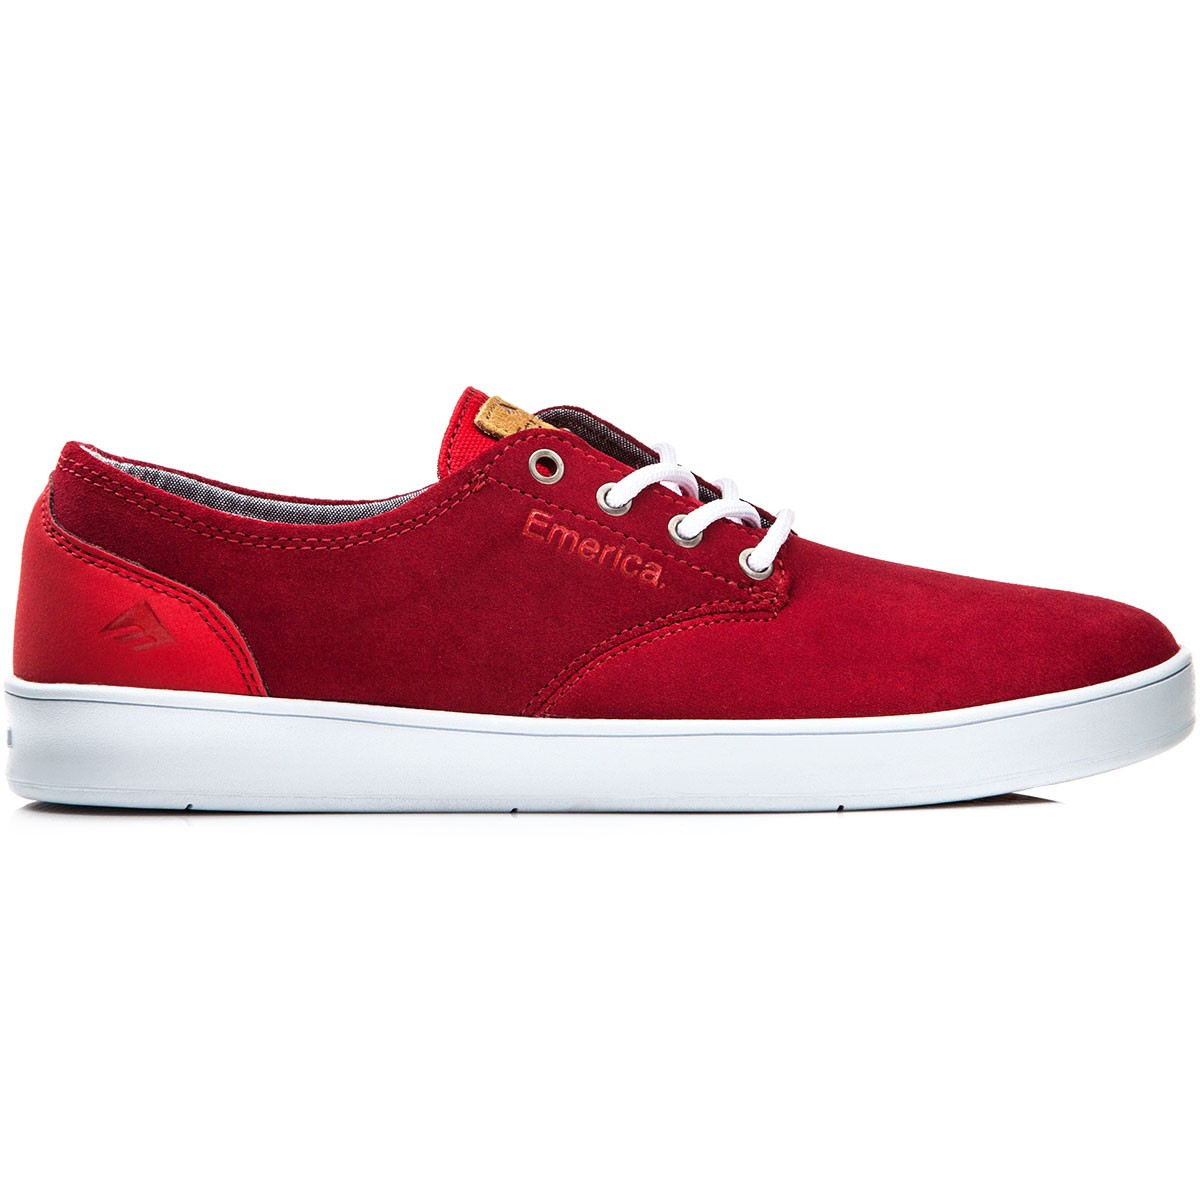 Emerica Laced Red Insoles Emerica On Shoe